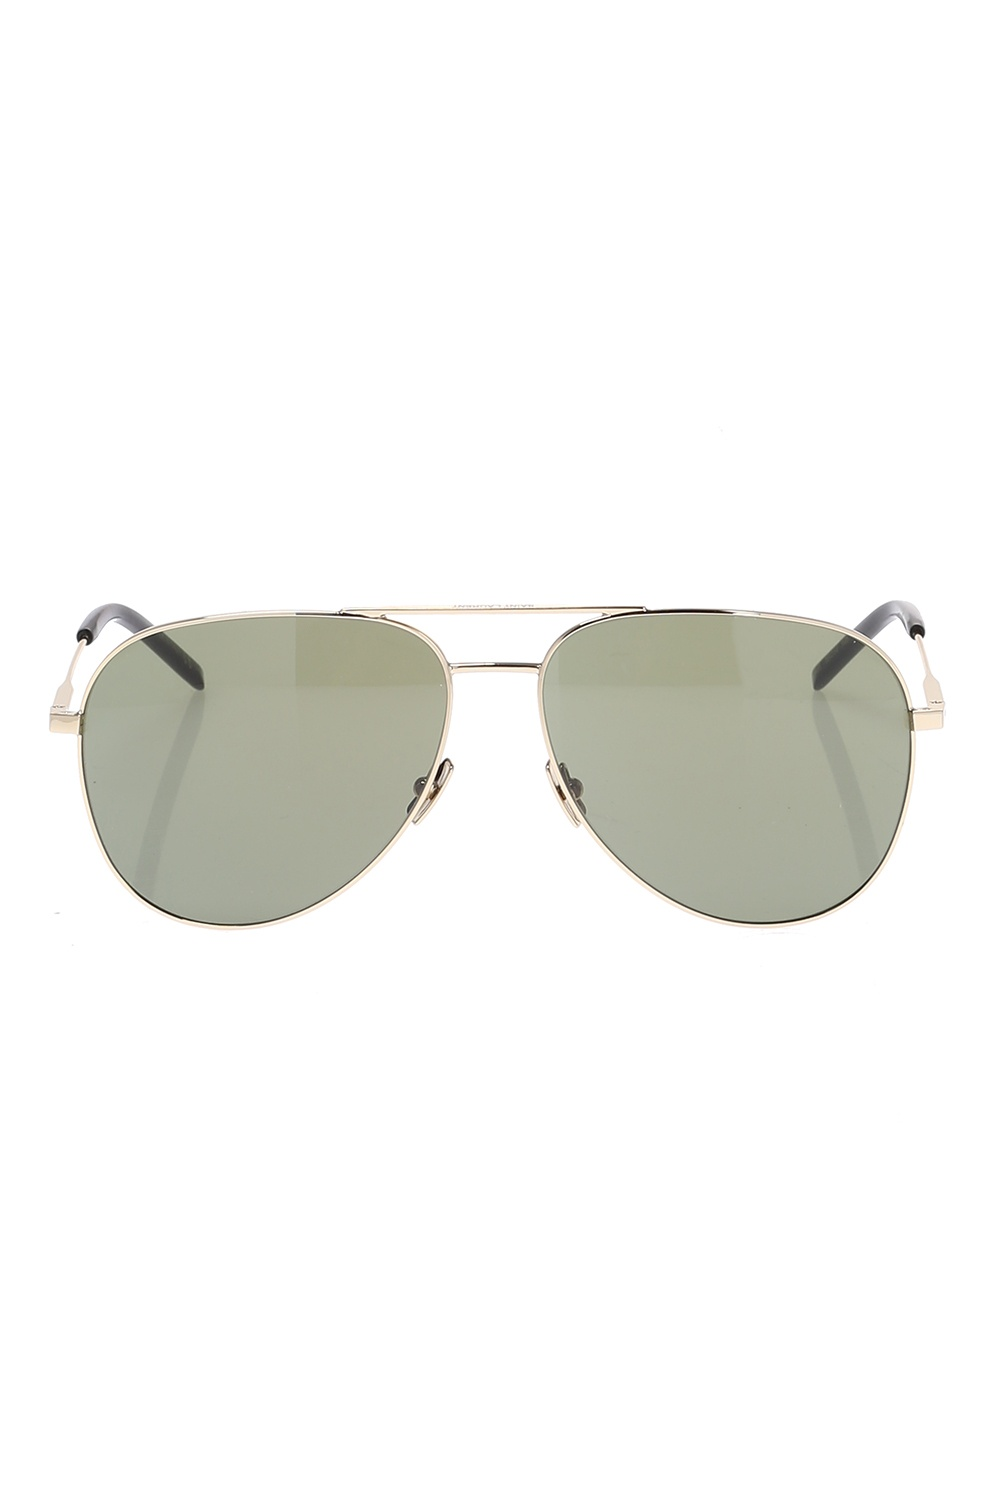 Saint Laurent 'Classic 11' sunglasses